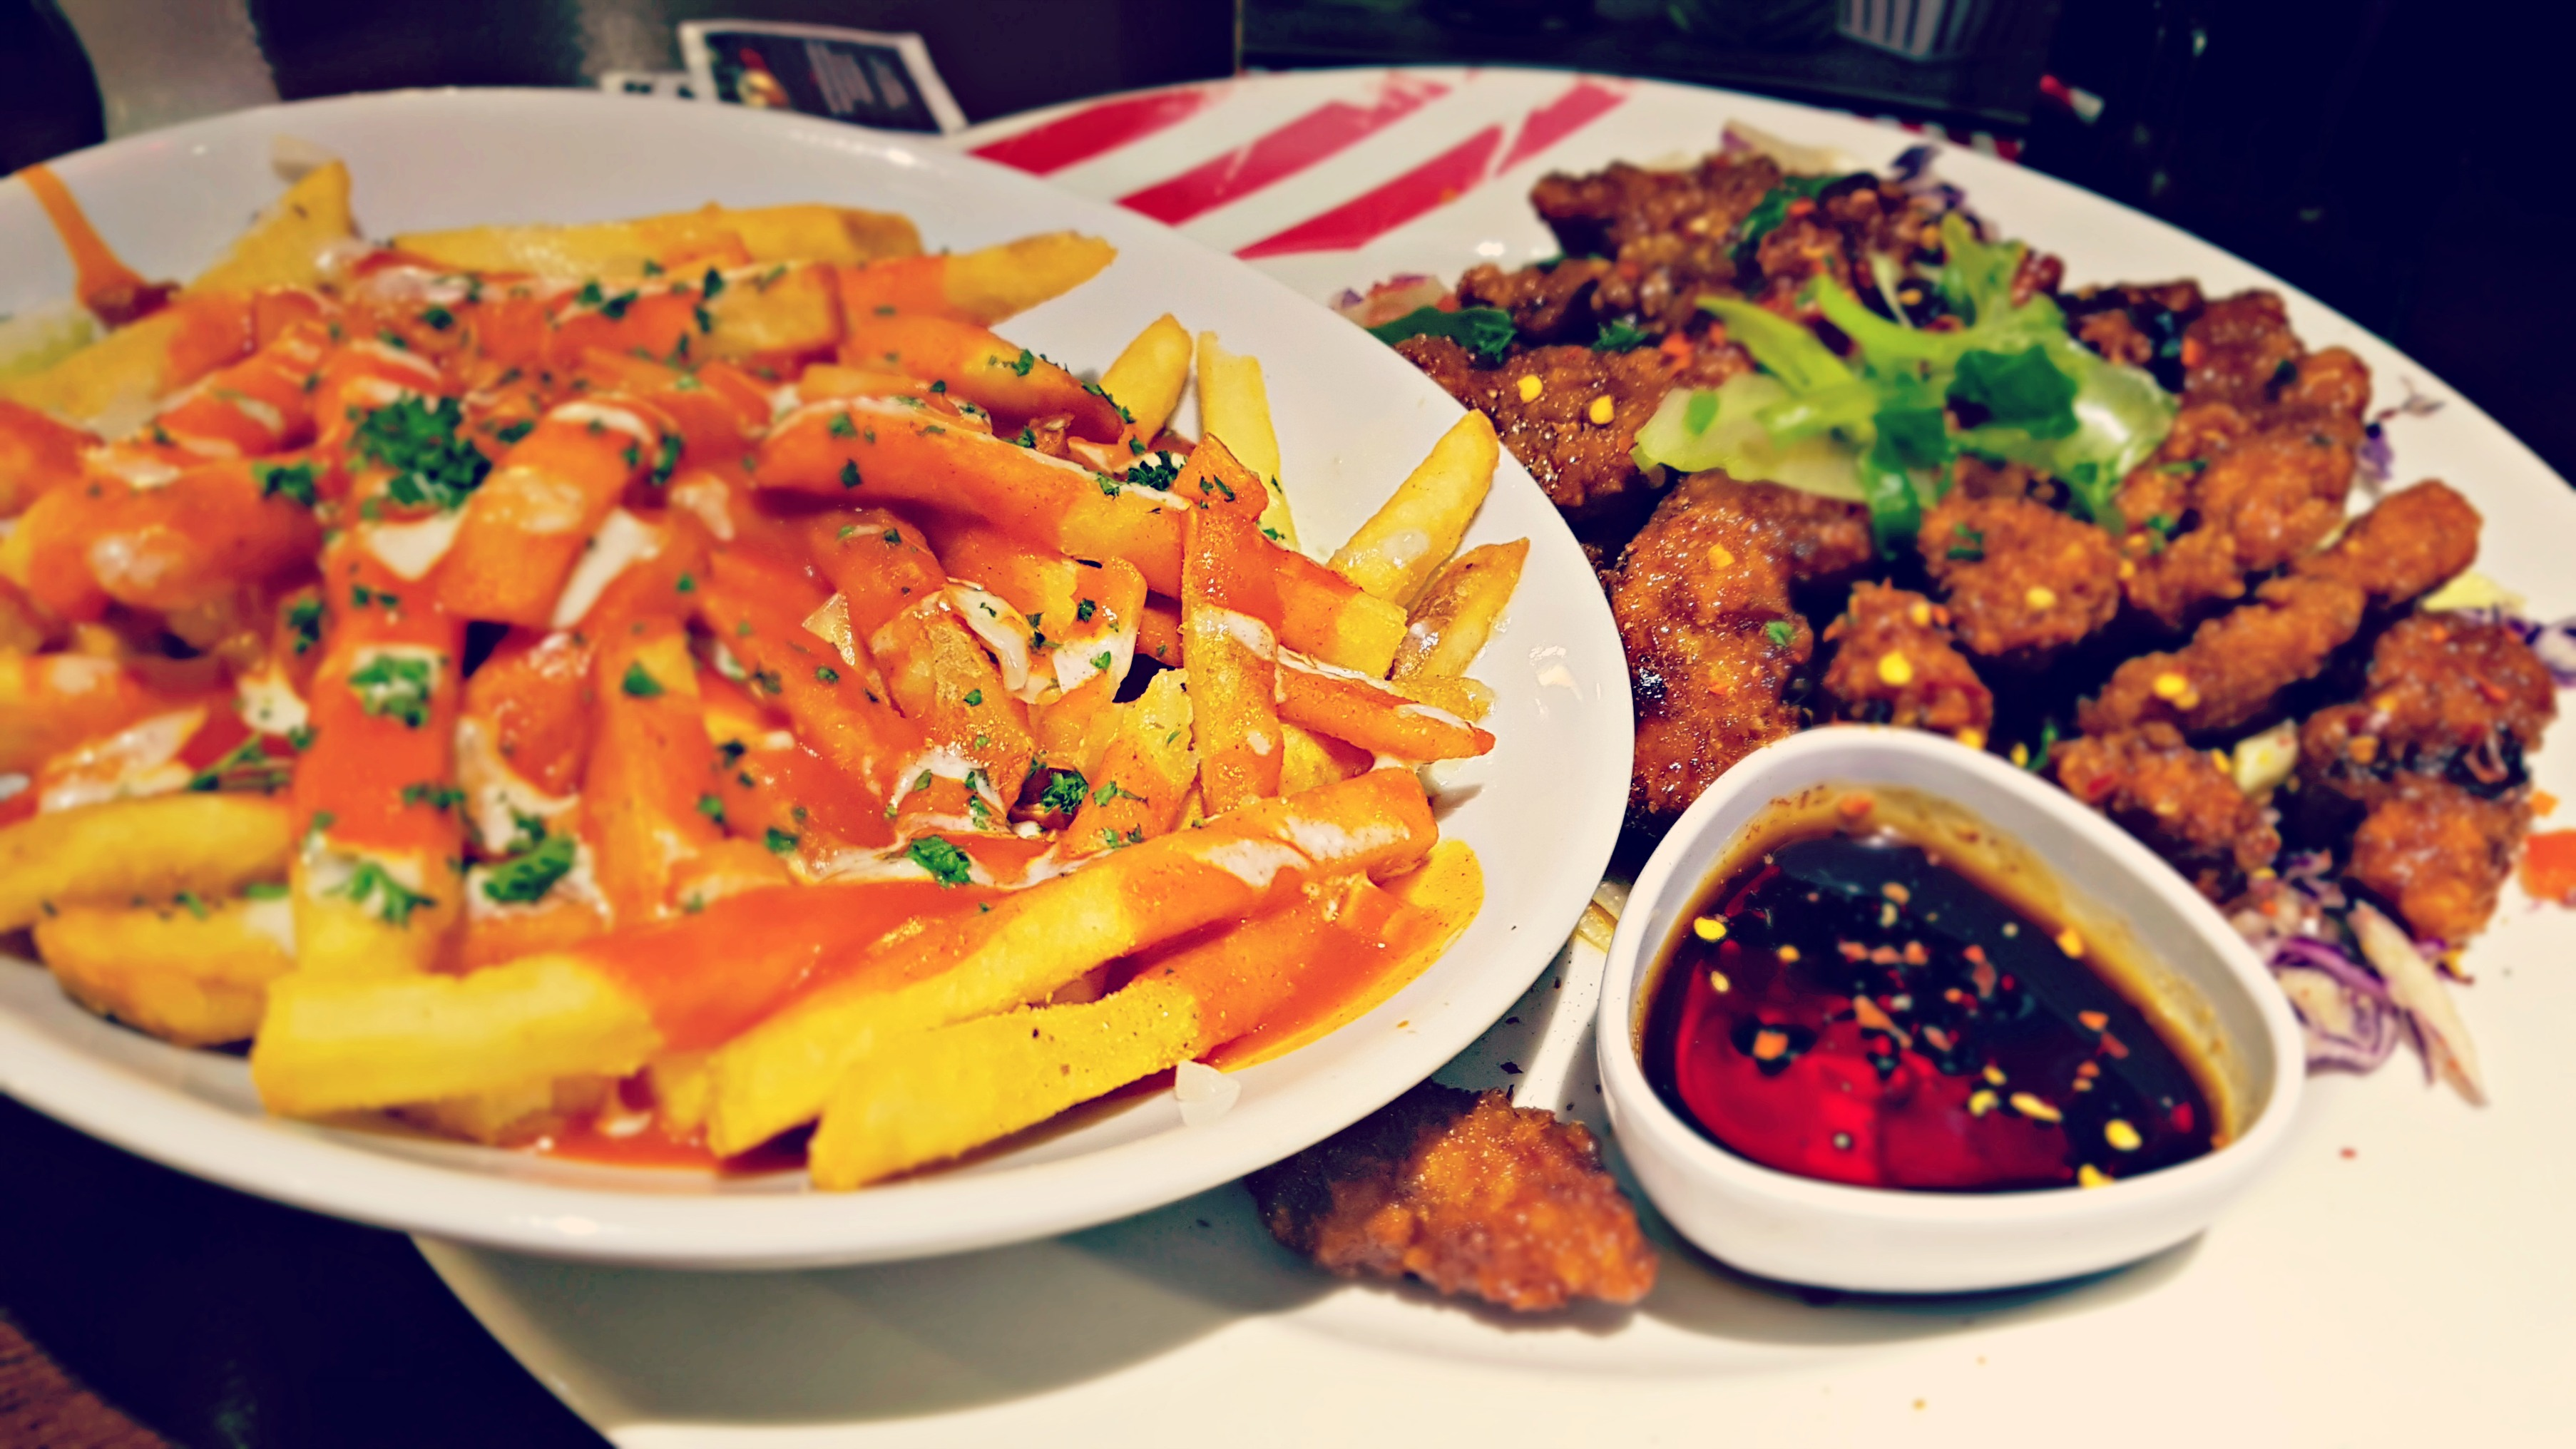 sesame chicken with a bowl of warrior fries from tgi fridays